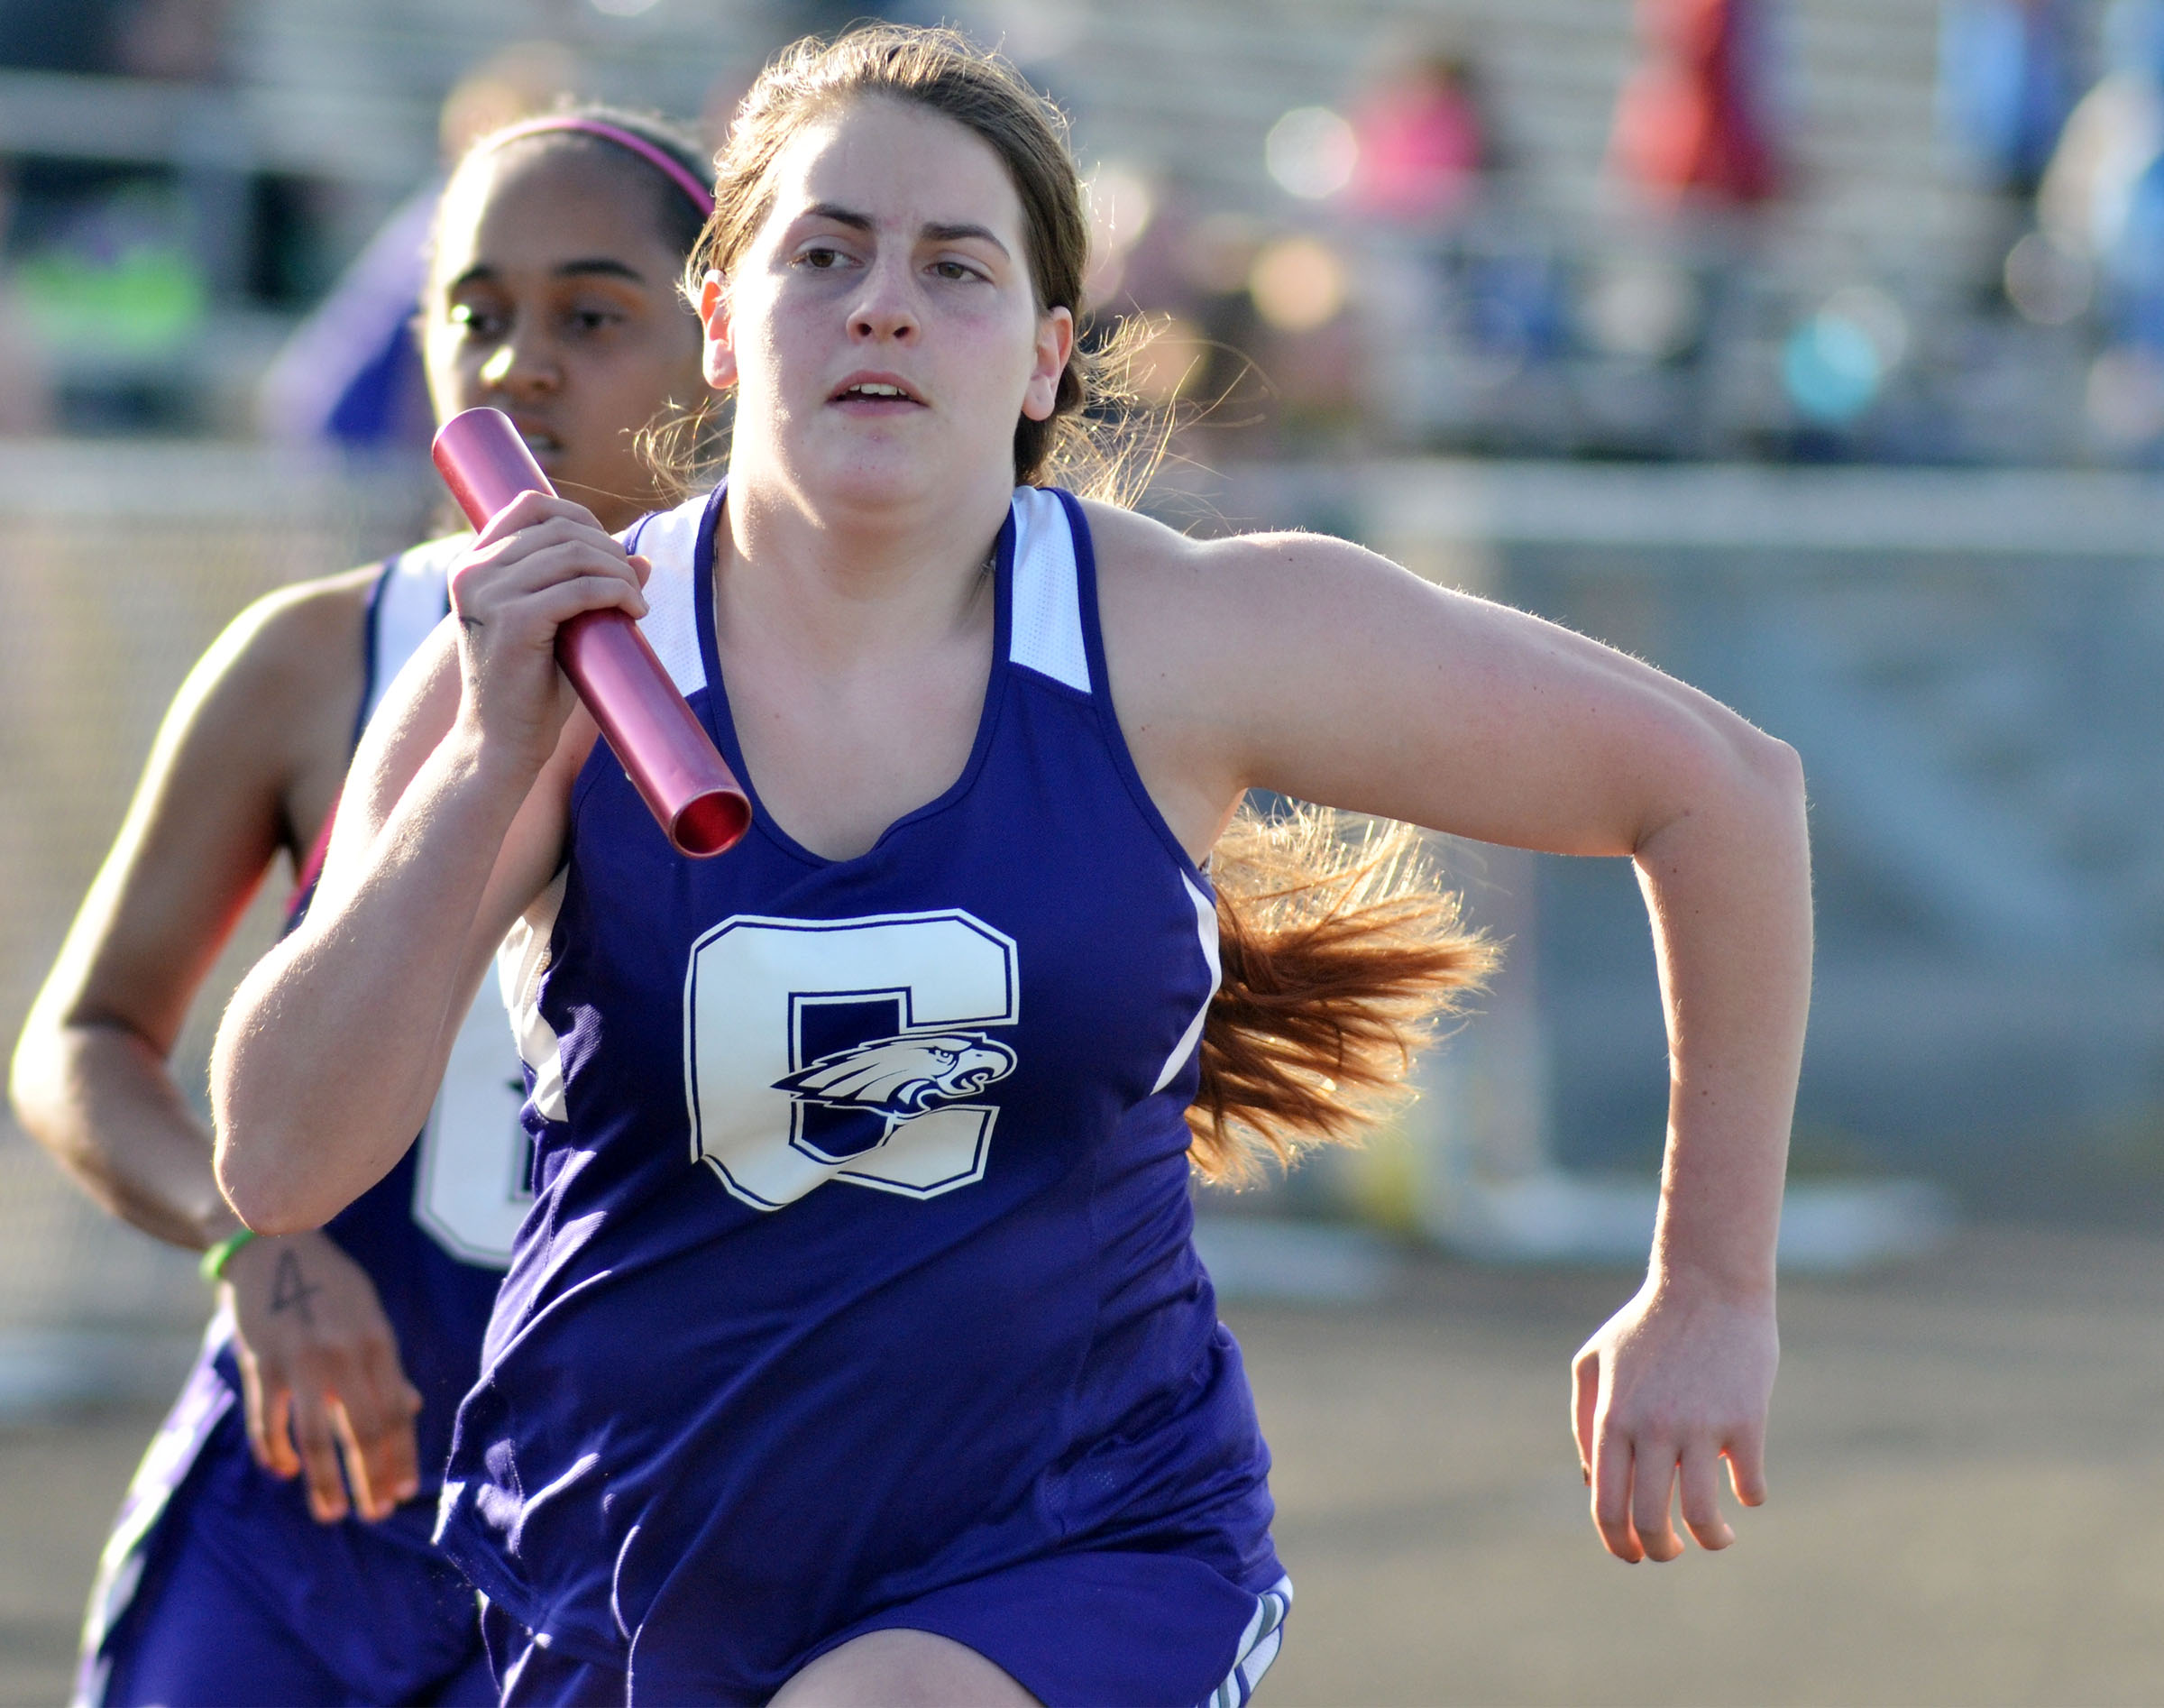 CHS sophomore Lauren Williams runs.